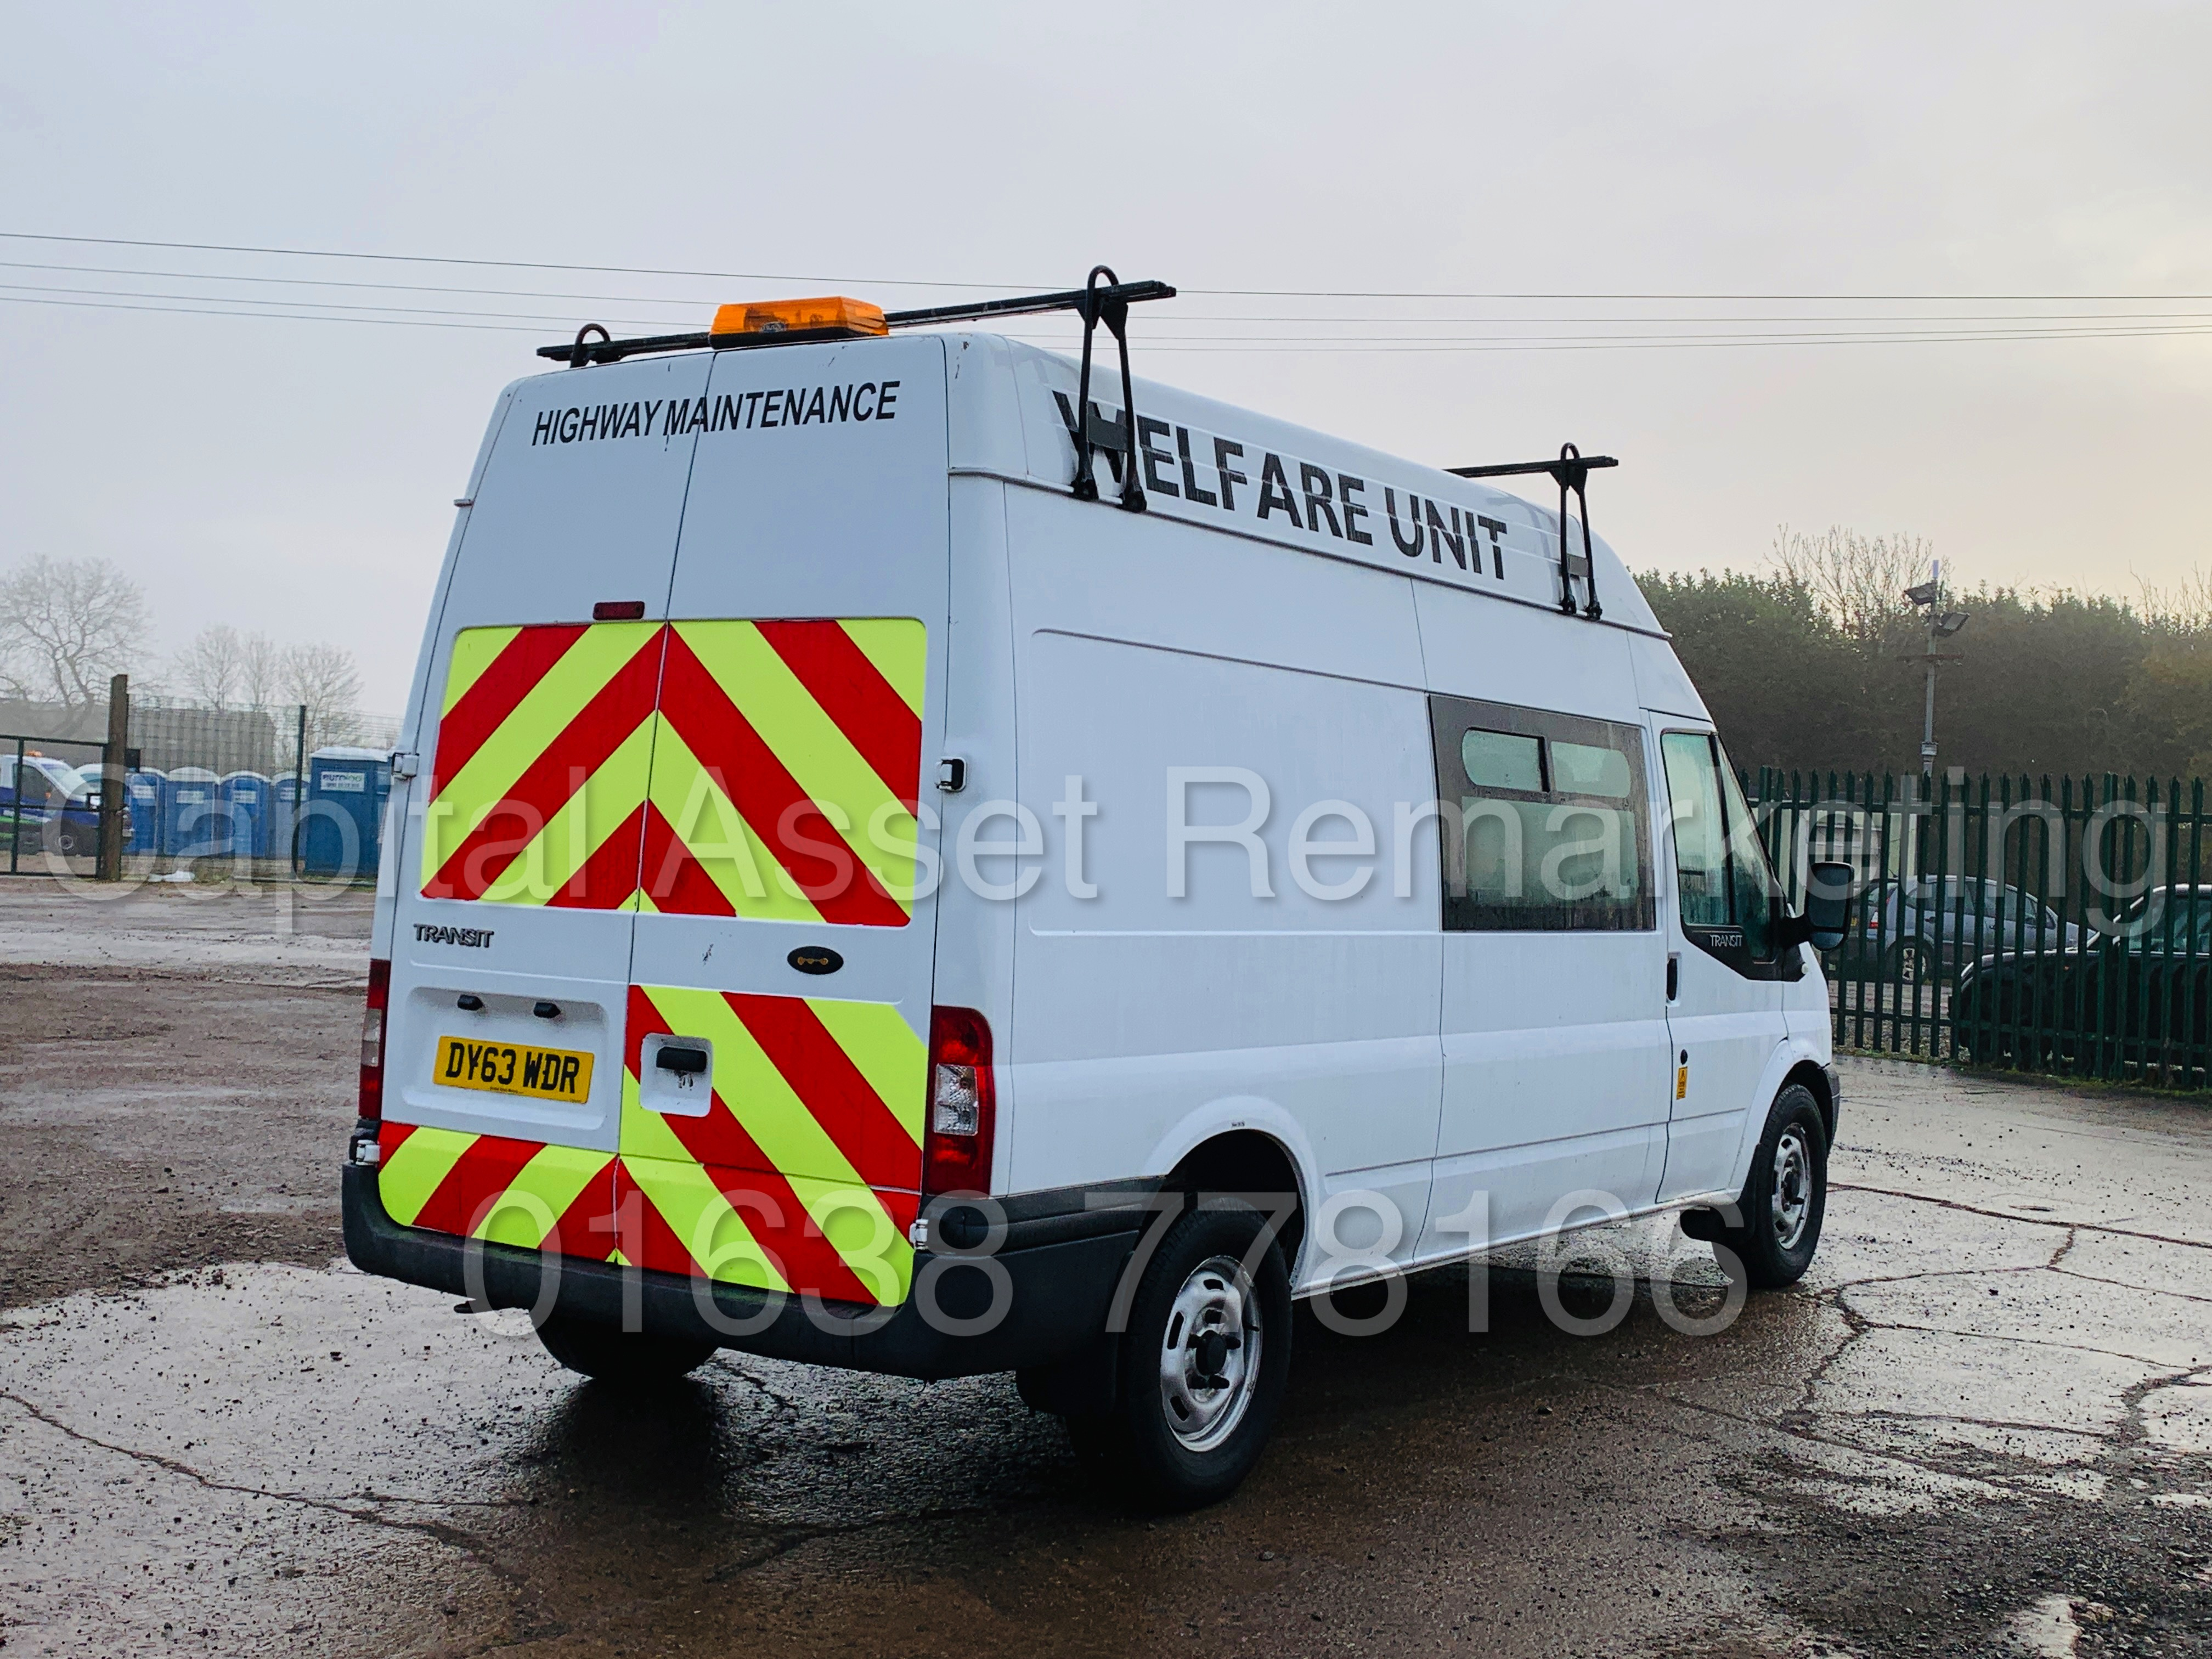 FORD TRANSIT T350 *LWB - 7 SEATER MESSING UNIT* (2014 MODEL) '2.4 TDCI - 6 SPEED' *ON BOARD TOILET* - Image 11 of 44